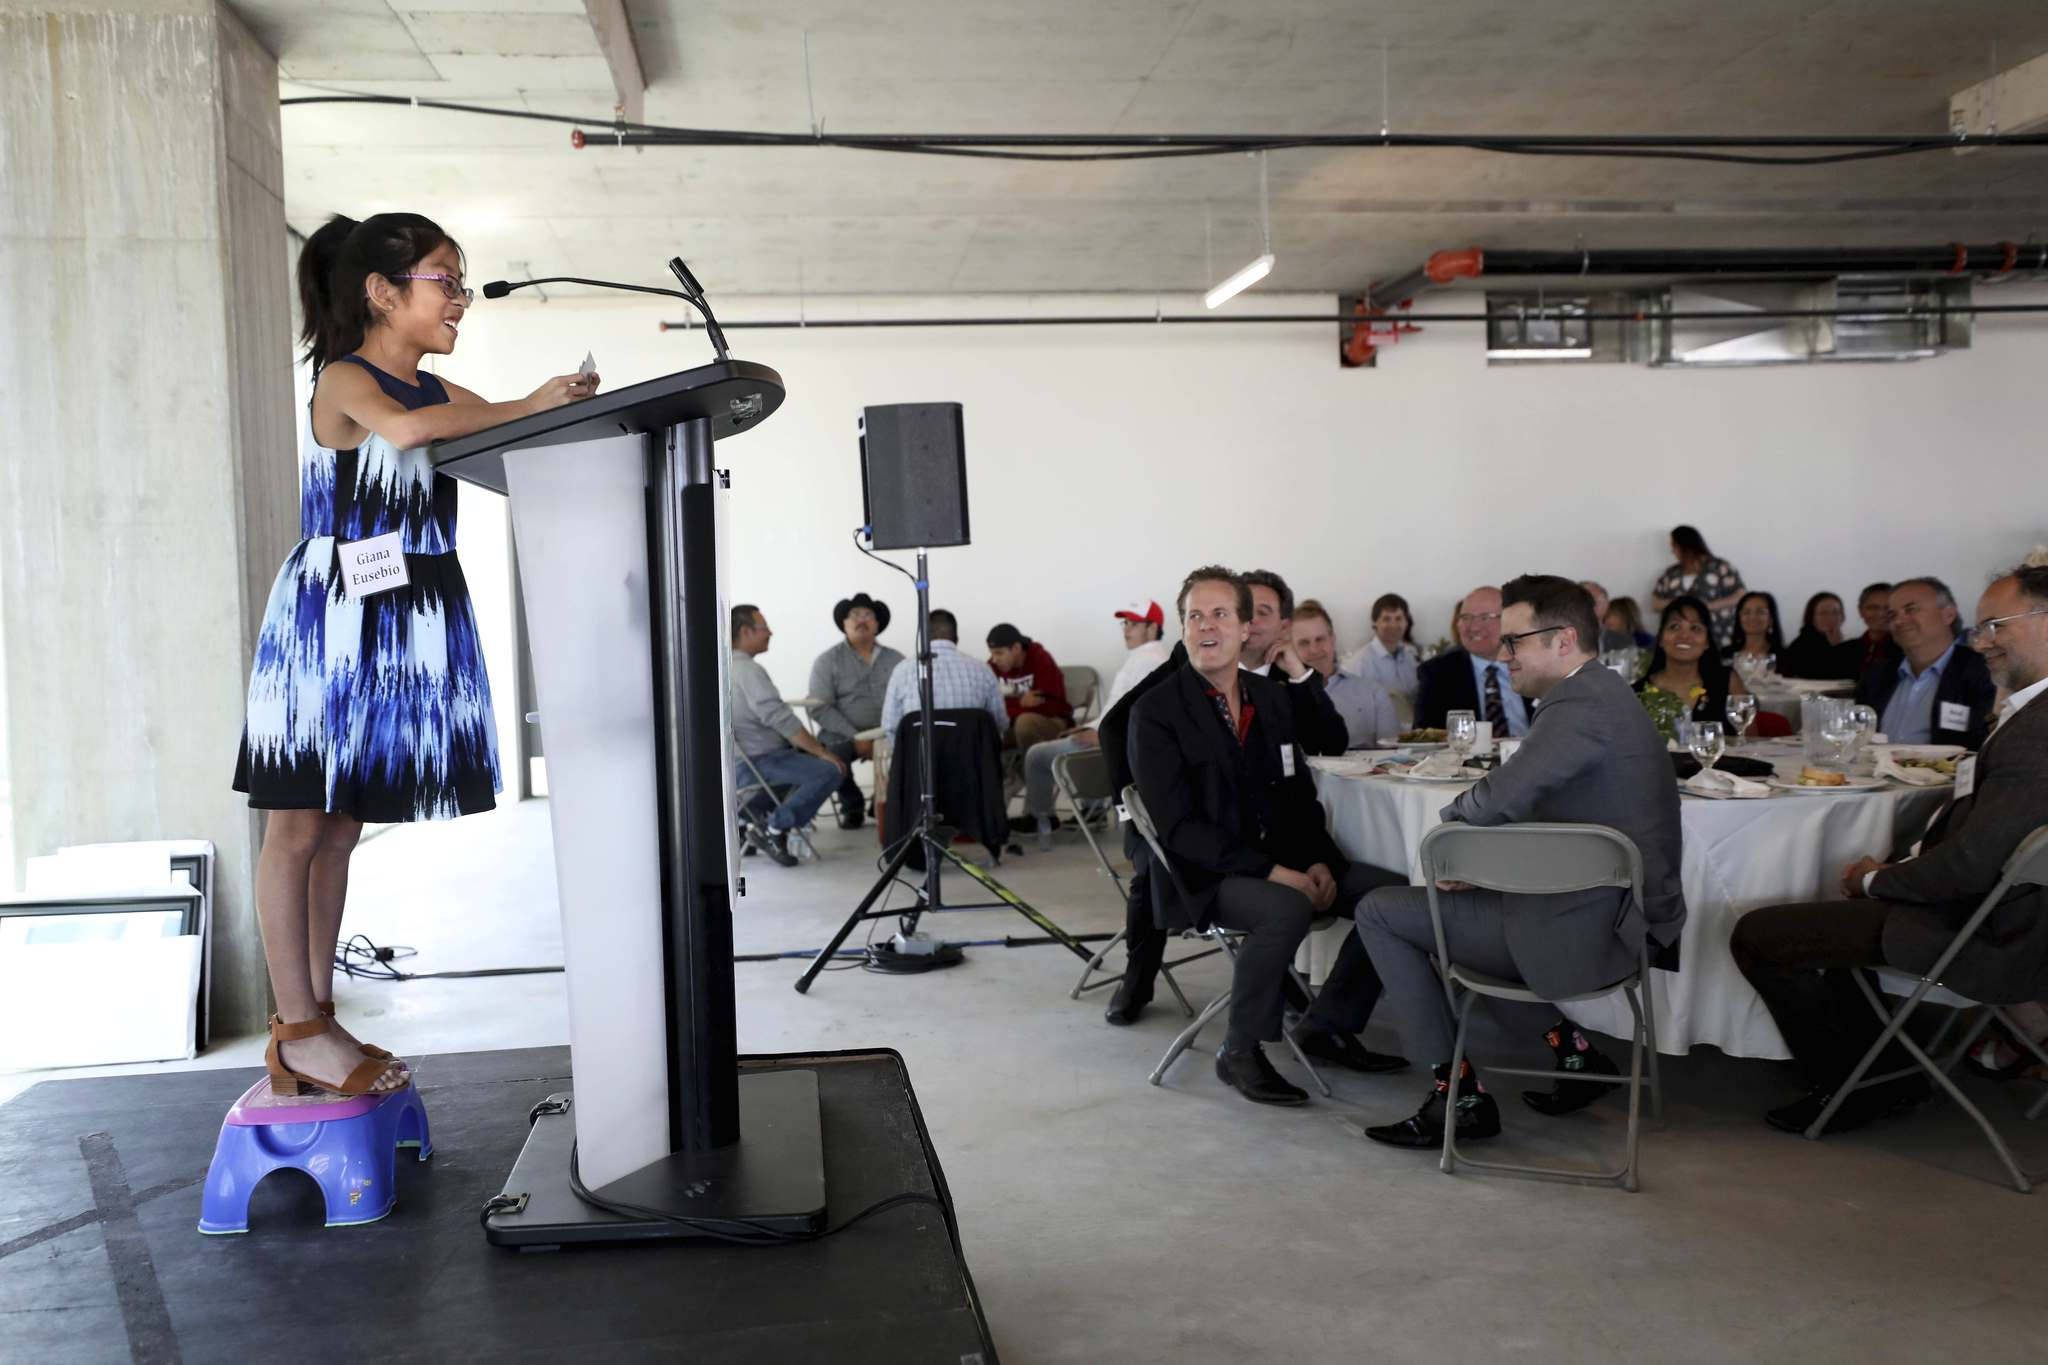 RUTH BONNEVILLE / WINNIPEG FREE PRESS LOCAL</p><p>The Children&#39;s Hospital, 2019 Champion Child &#8211; Gianna Eusebio (10 years), born pre-mature with heart problems, speaks at the Children&rsquo;s Hospital Foundation of Manitoba luncheon and annual general meeting held on the 8th floor of True North Square Tuesday.</p>